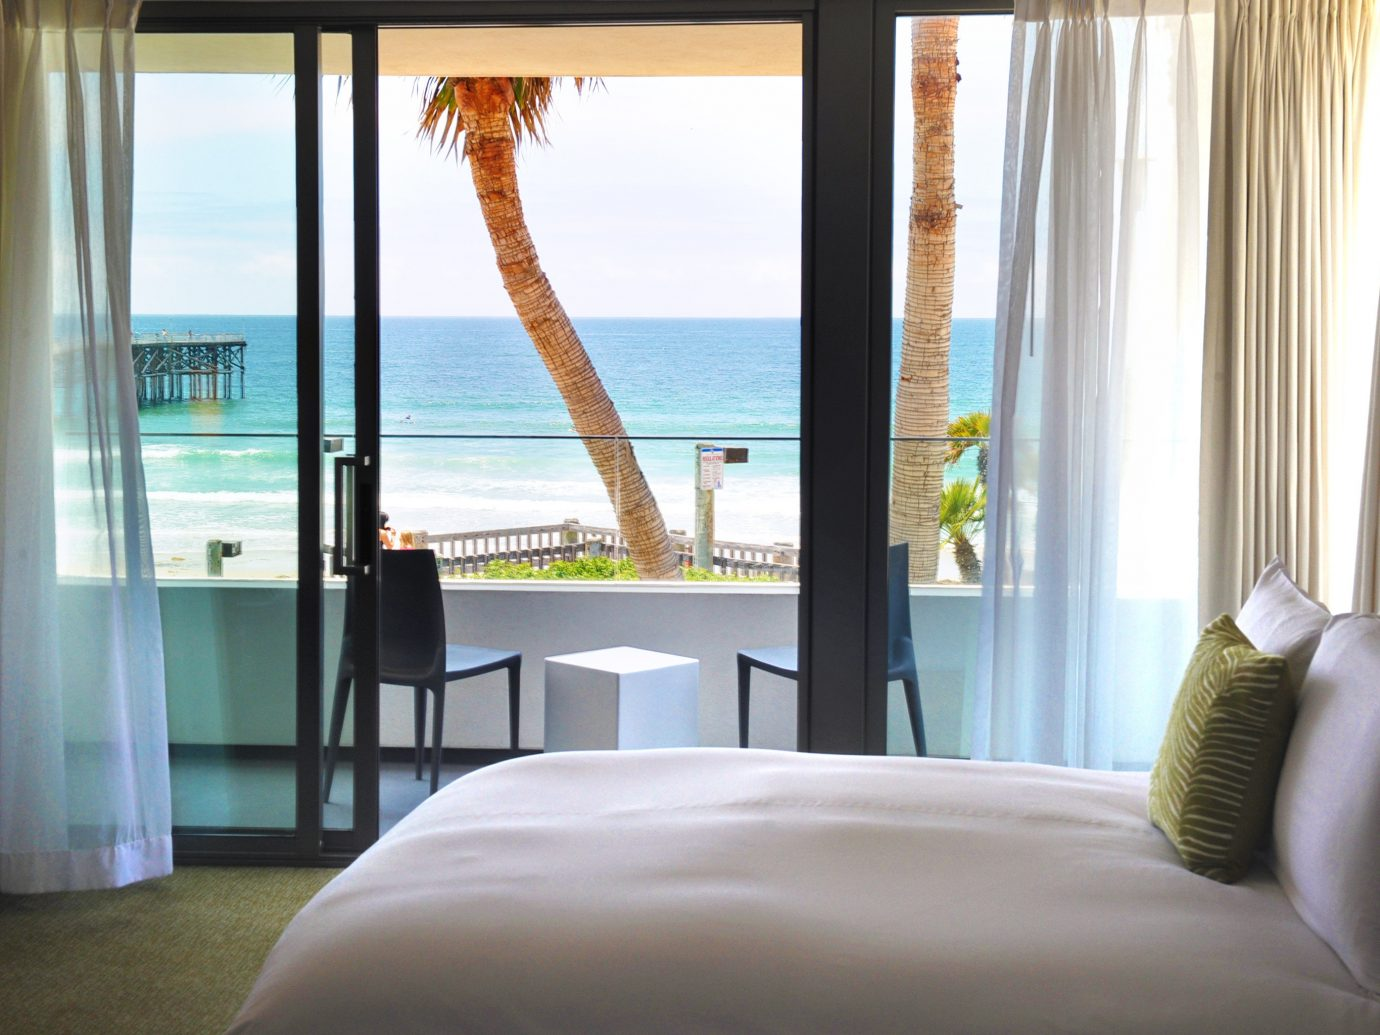 Balcony Beachfront Bedroom Hotels Living Resort Scenic views indoor window bed hotel floor room property interior design home curtain Suite living room condominium nice estate window treatment window covering textile real estate apartment overlooking